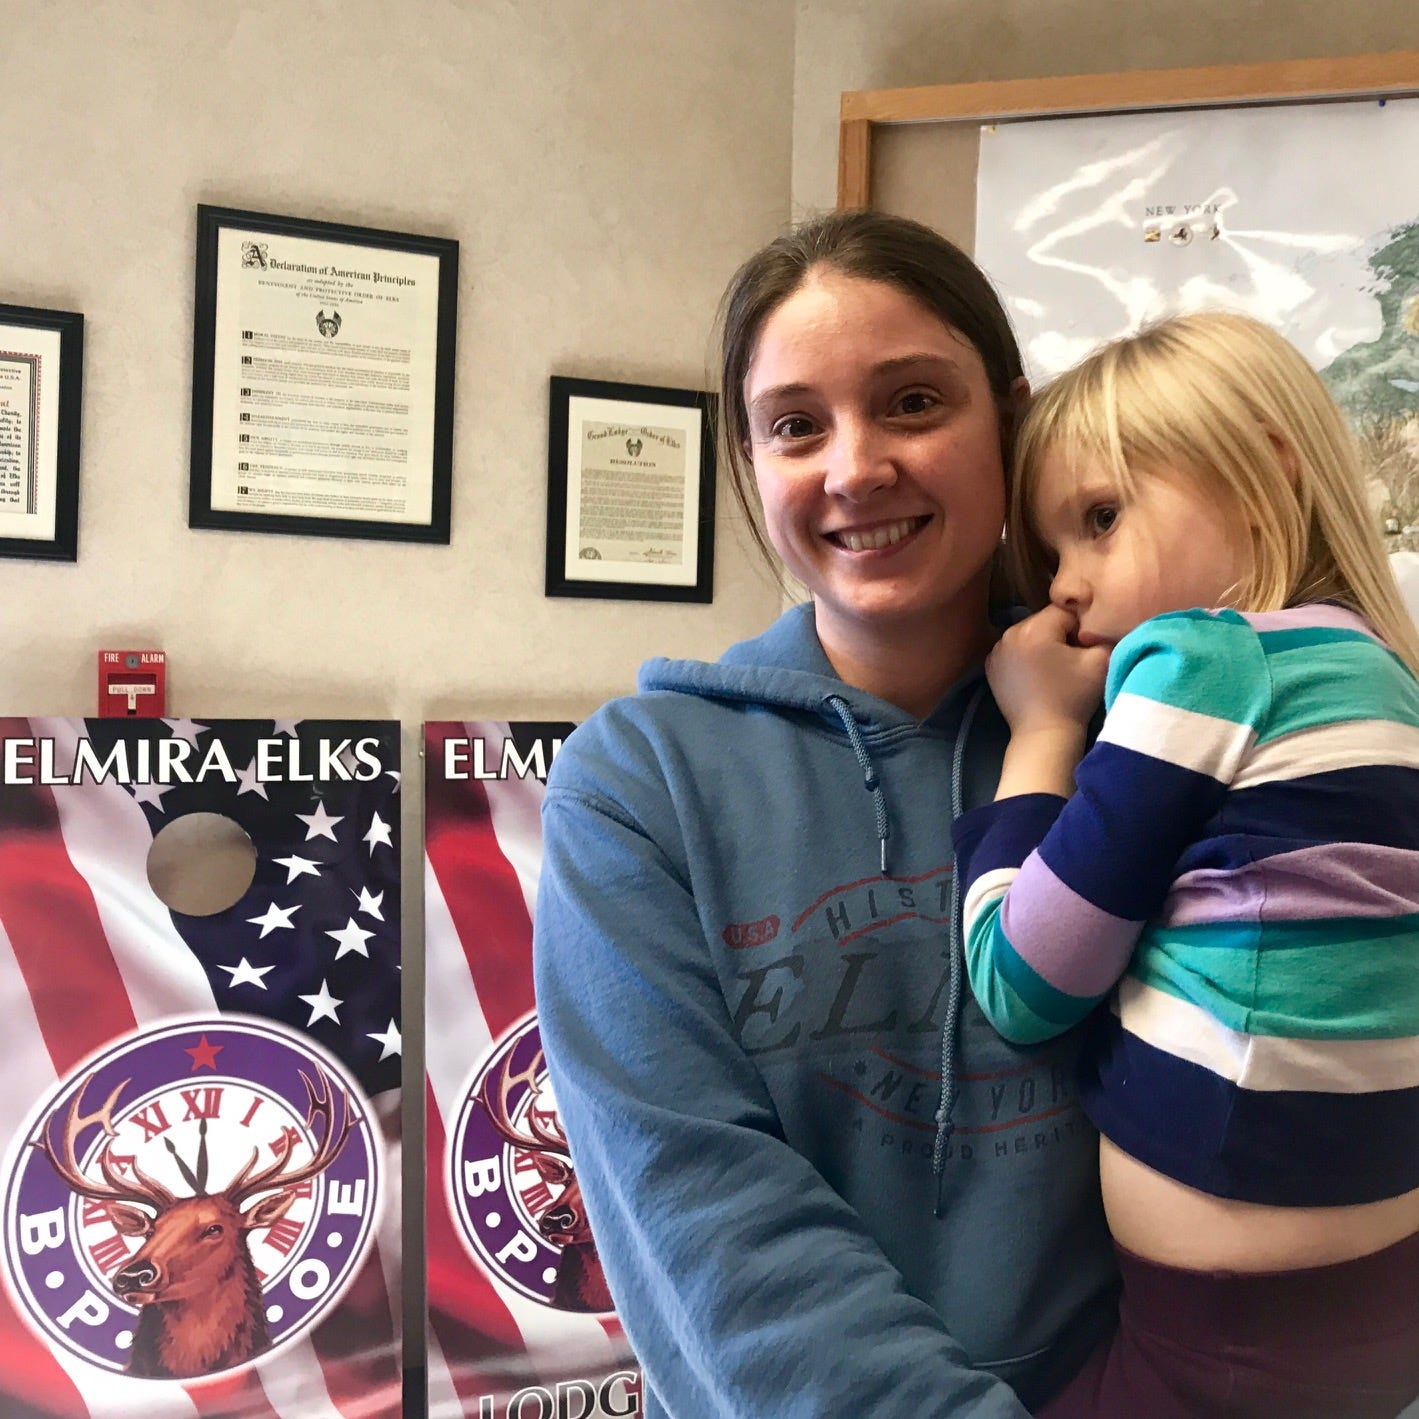 Anna Van Schoick of Elmira is a mother of seven and homeschools her kids. She brought them with her to vote on Tuesday.